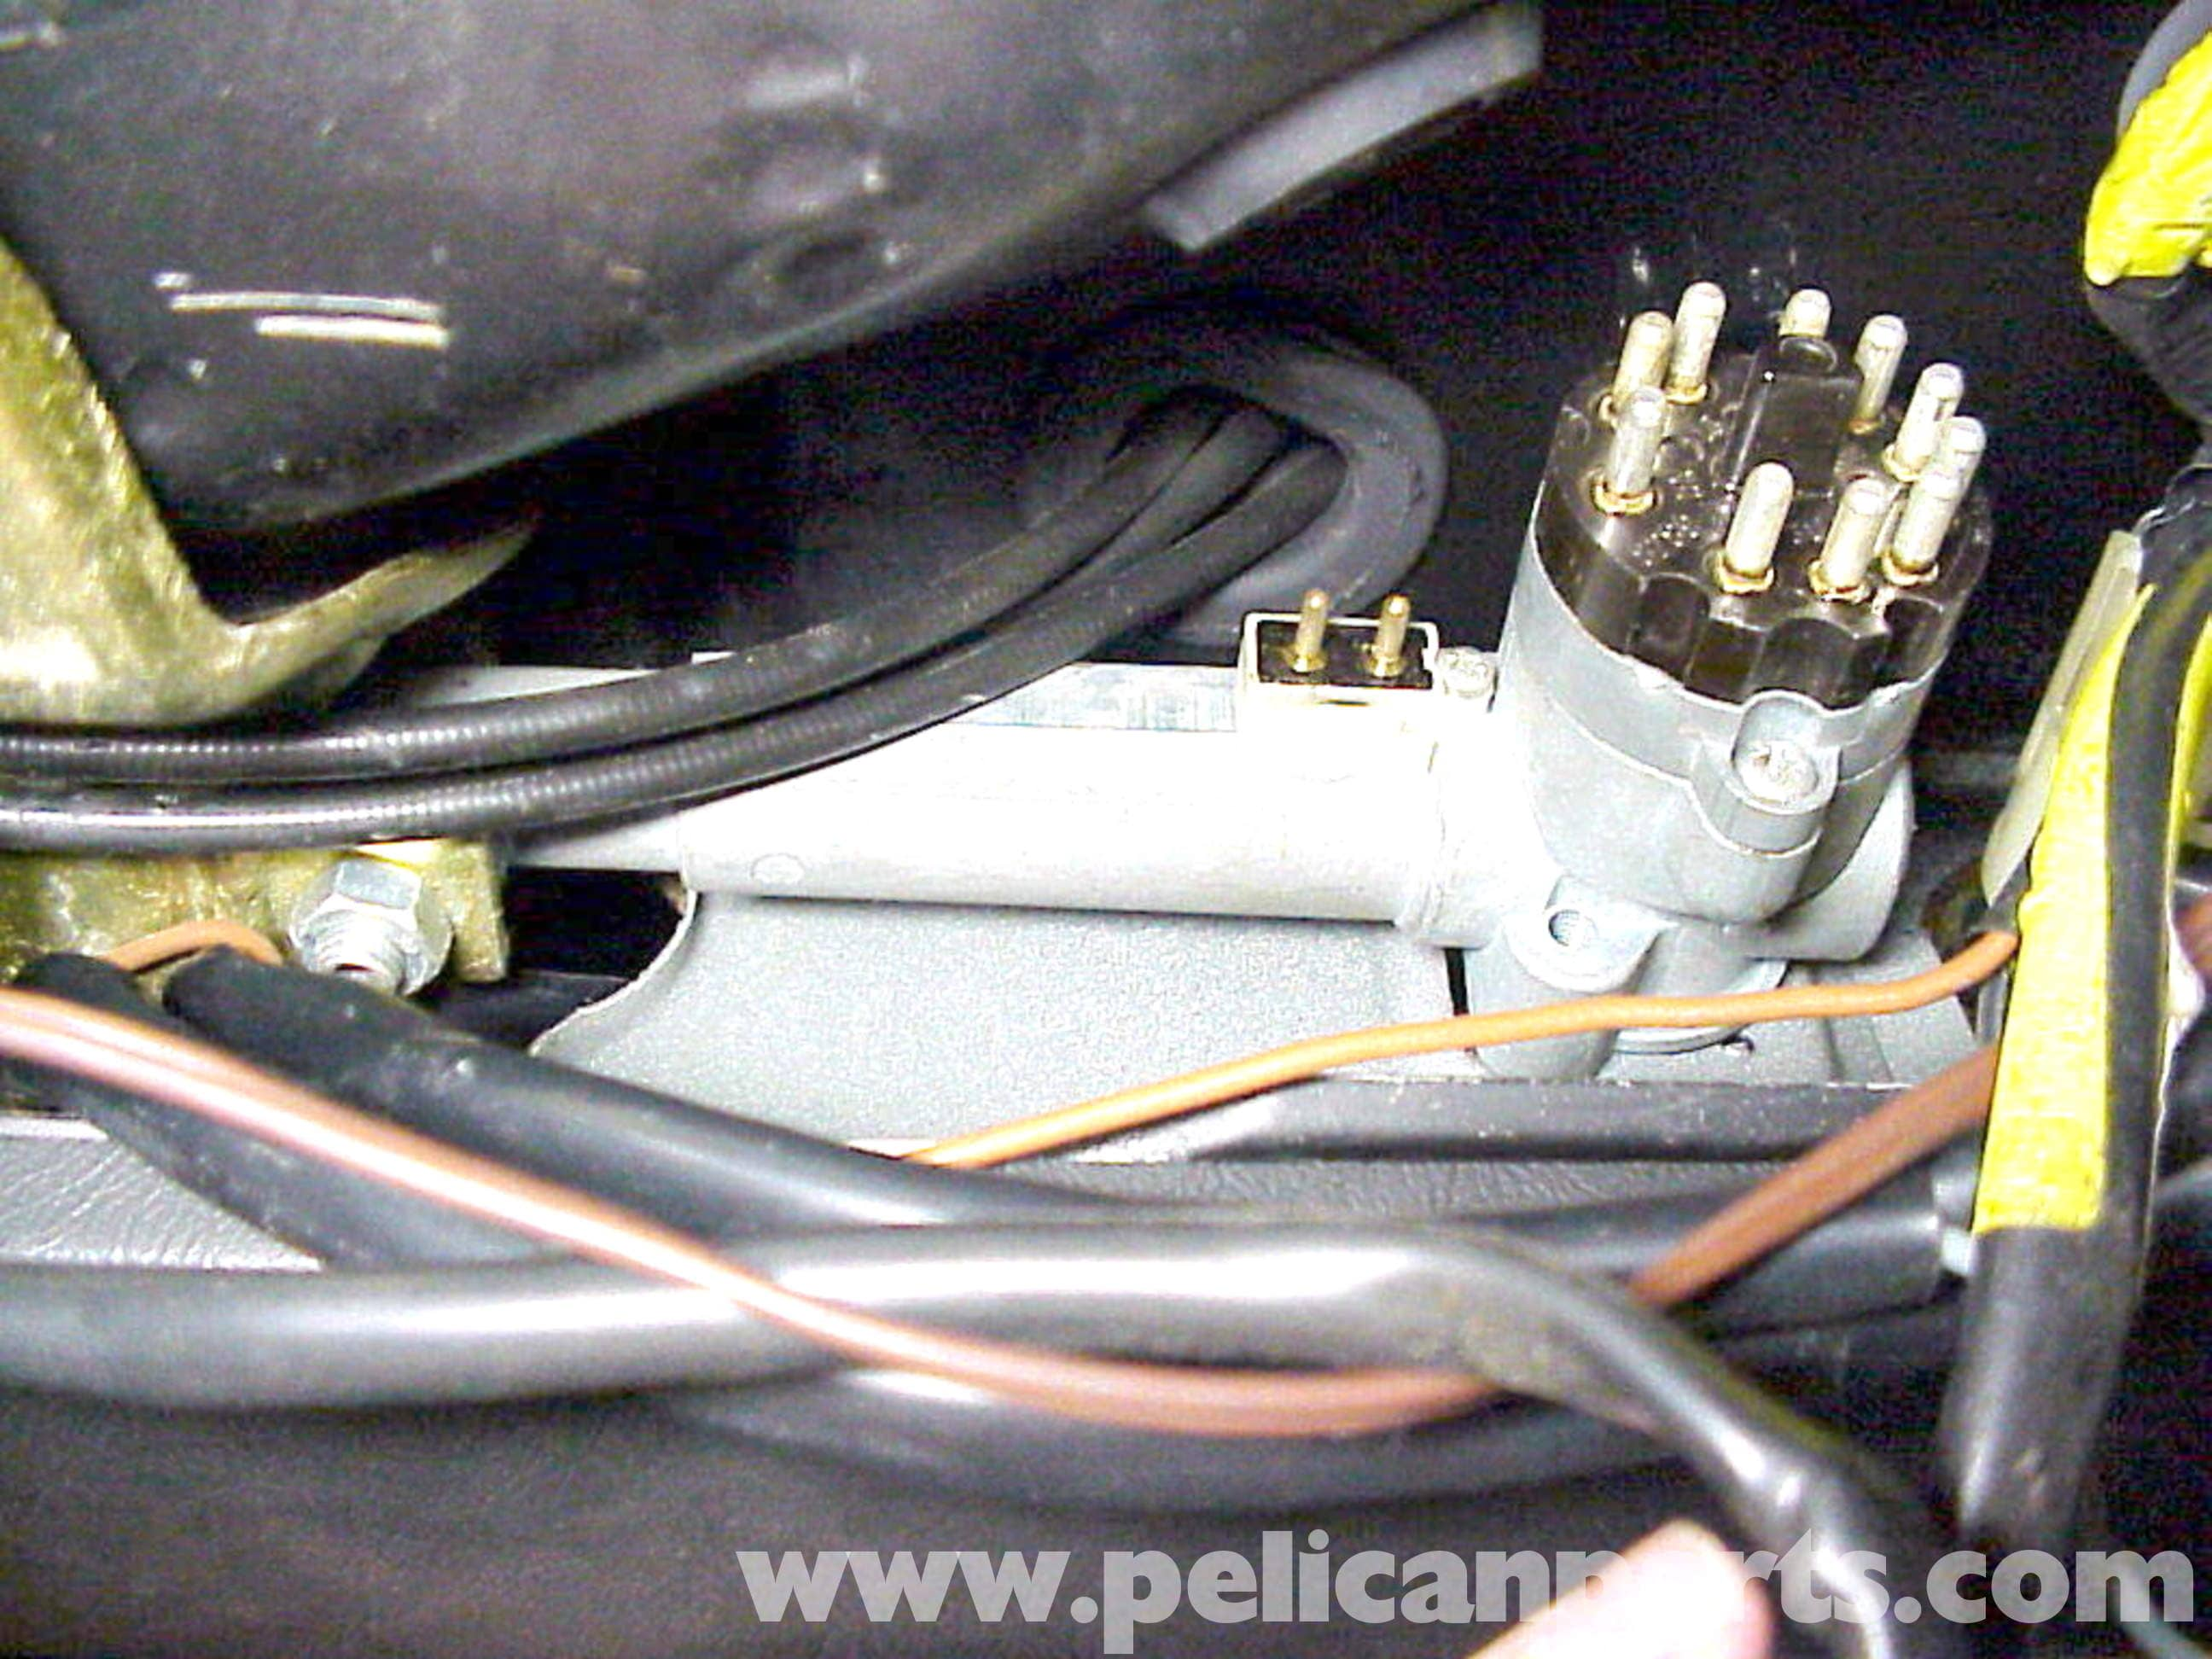 Pic2 porsche 911 ignition switch replacement 911 (1965 89) 930 1980 porsche 911 wiring diagram at suagrazia.org